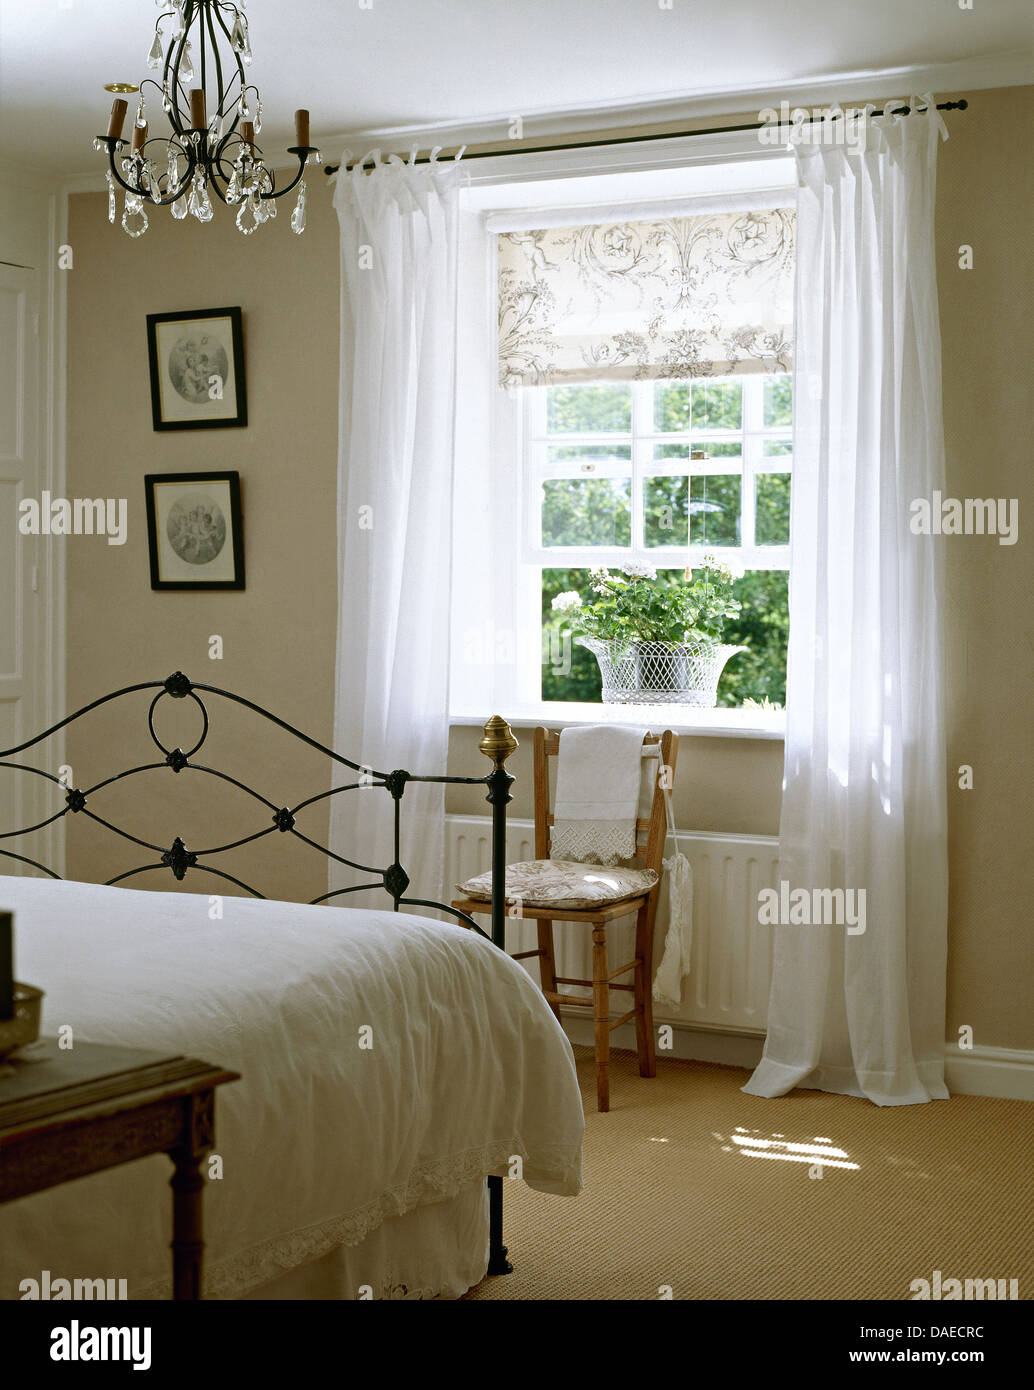 Pale Bedroom White Bedlinen On Wrought Iron Bed In Pale Gray Bedroom With White